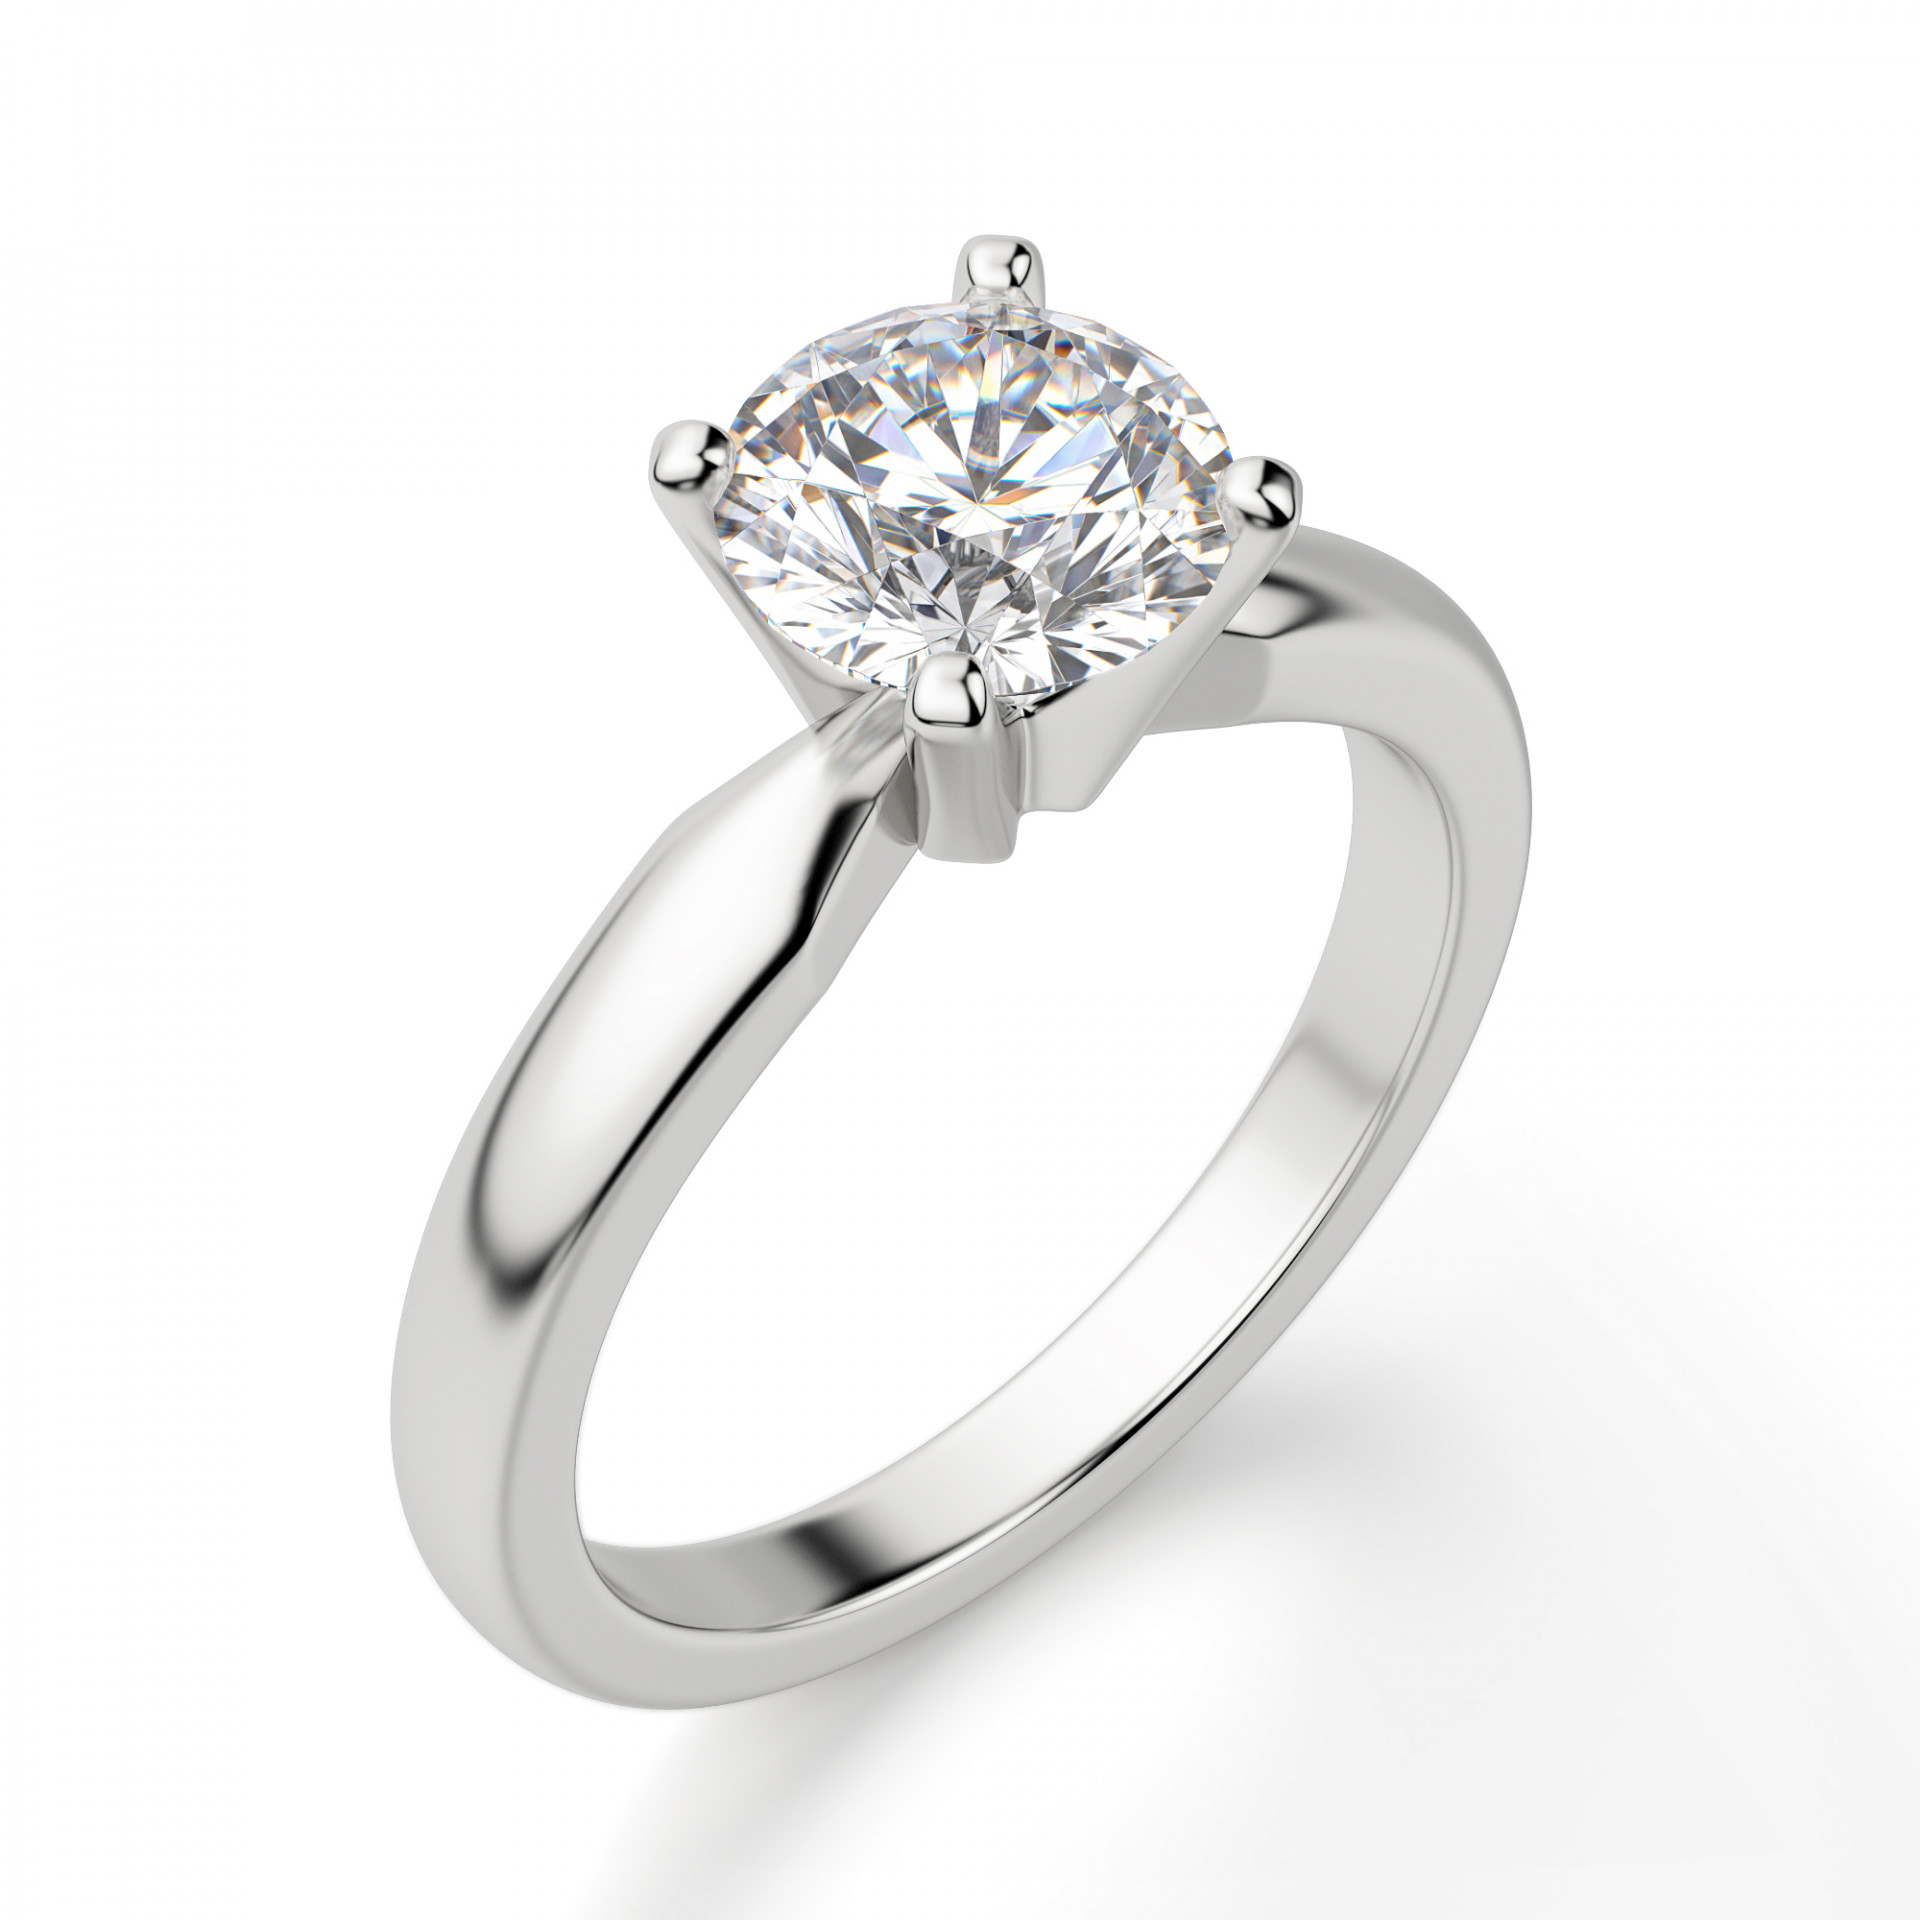 1920x1920 Engagement Rings Solitare Tiffany Style Solitaire Engagement Ring